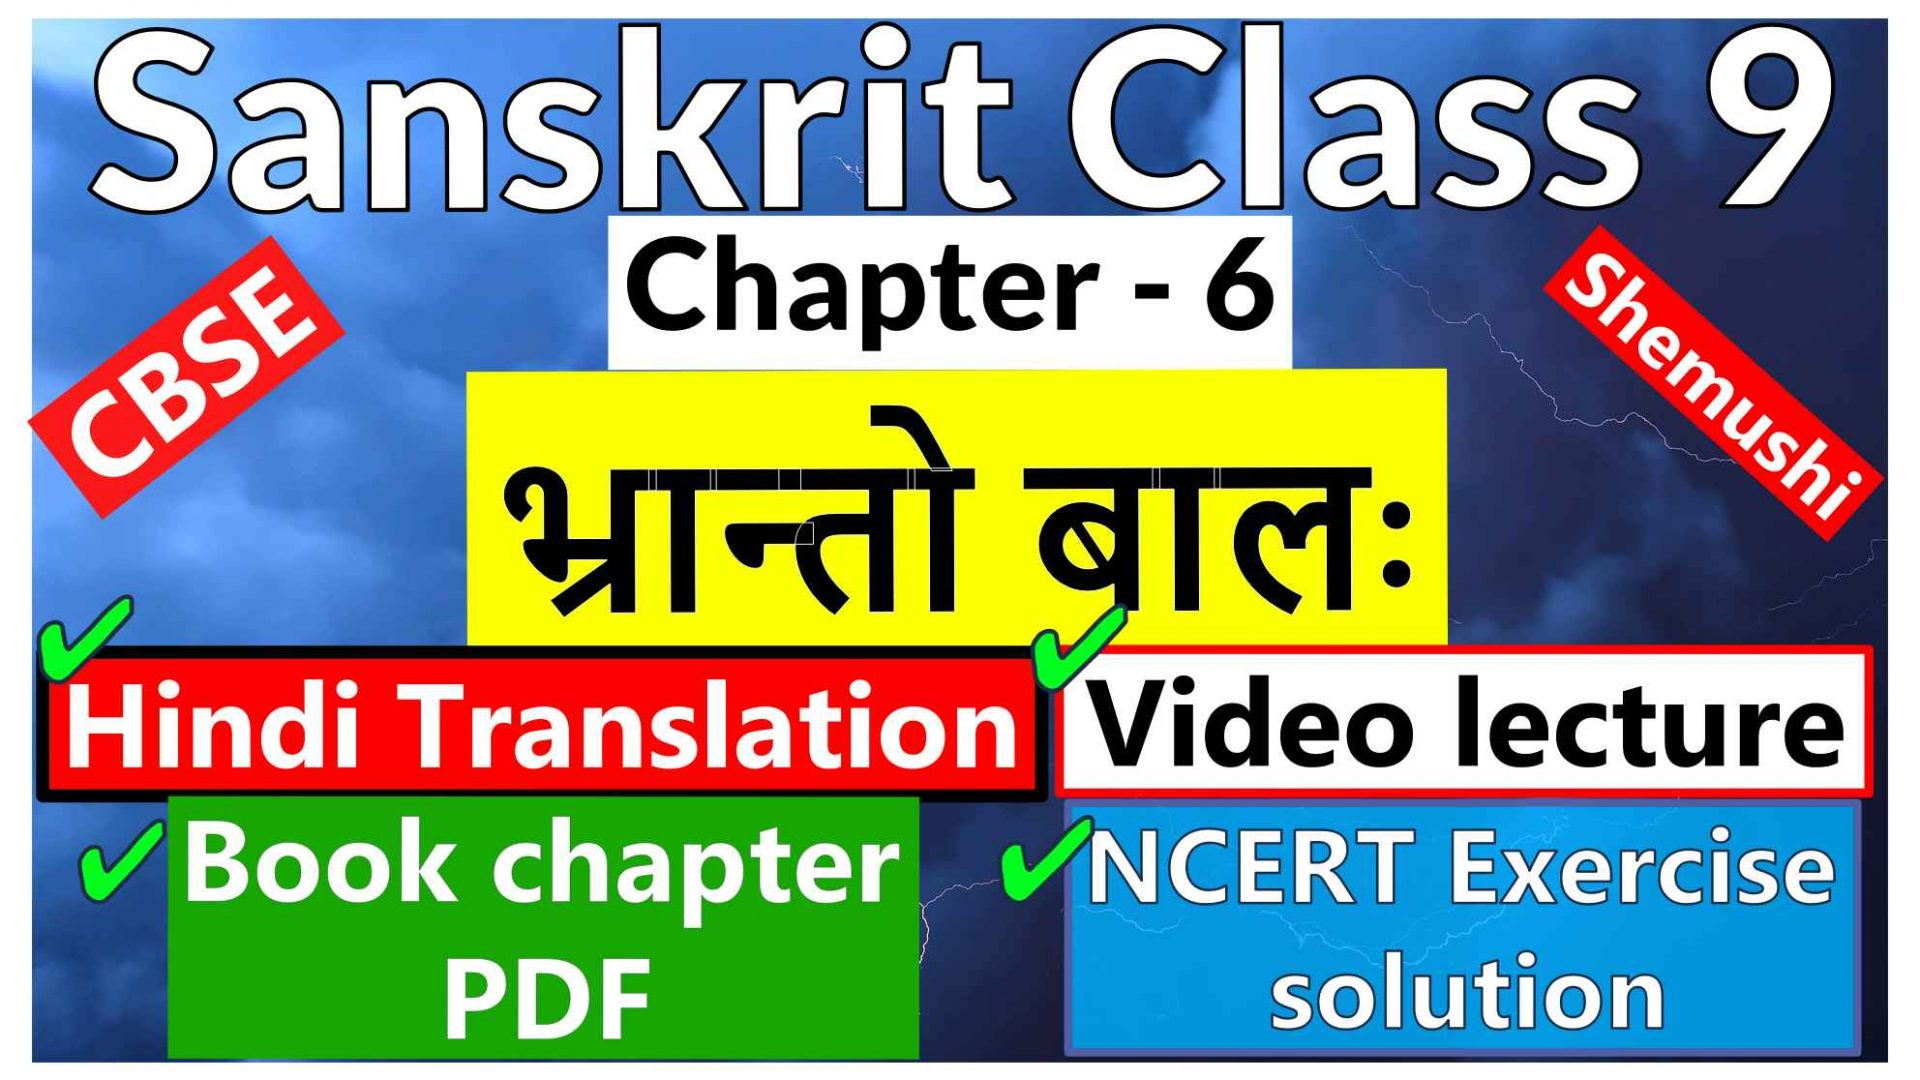 Sanskrit Class 9 Chapter 6 - भ्रान्तो बालः -Hindi Translation, Video lecture, NCERT Exercise solution (Question-Answer), Book chapter PDF